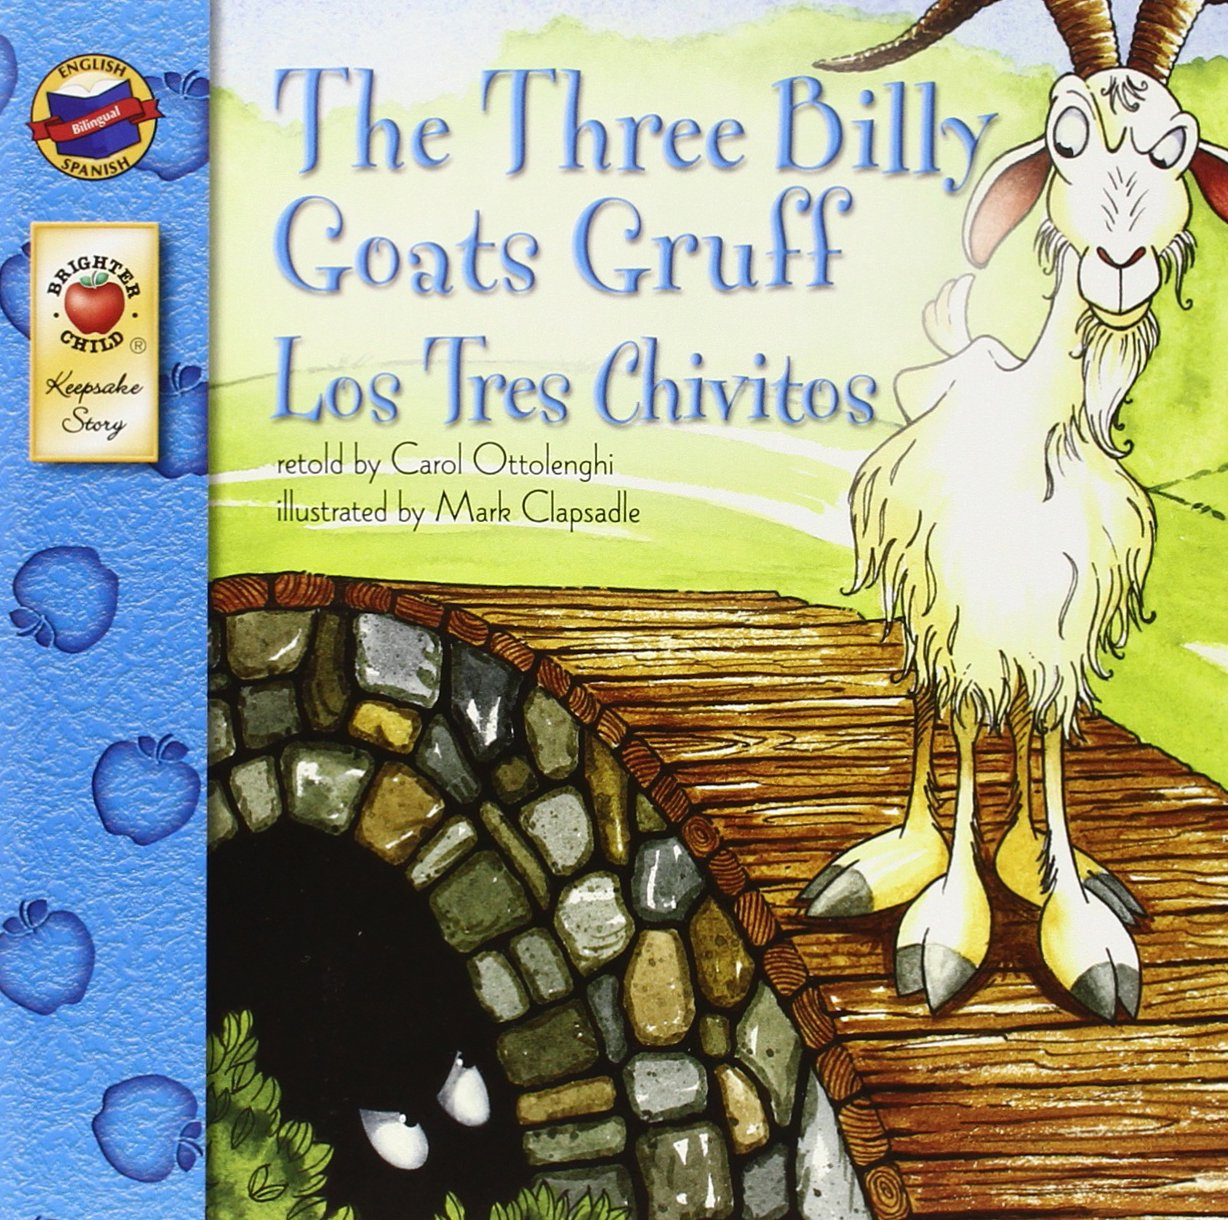 Worksheet Three Billy Goats Gruff Story amazon com the three billy goats gruff los tres chivitos keepsake stories 9780769658643 carol ottolenghi books